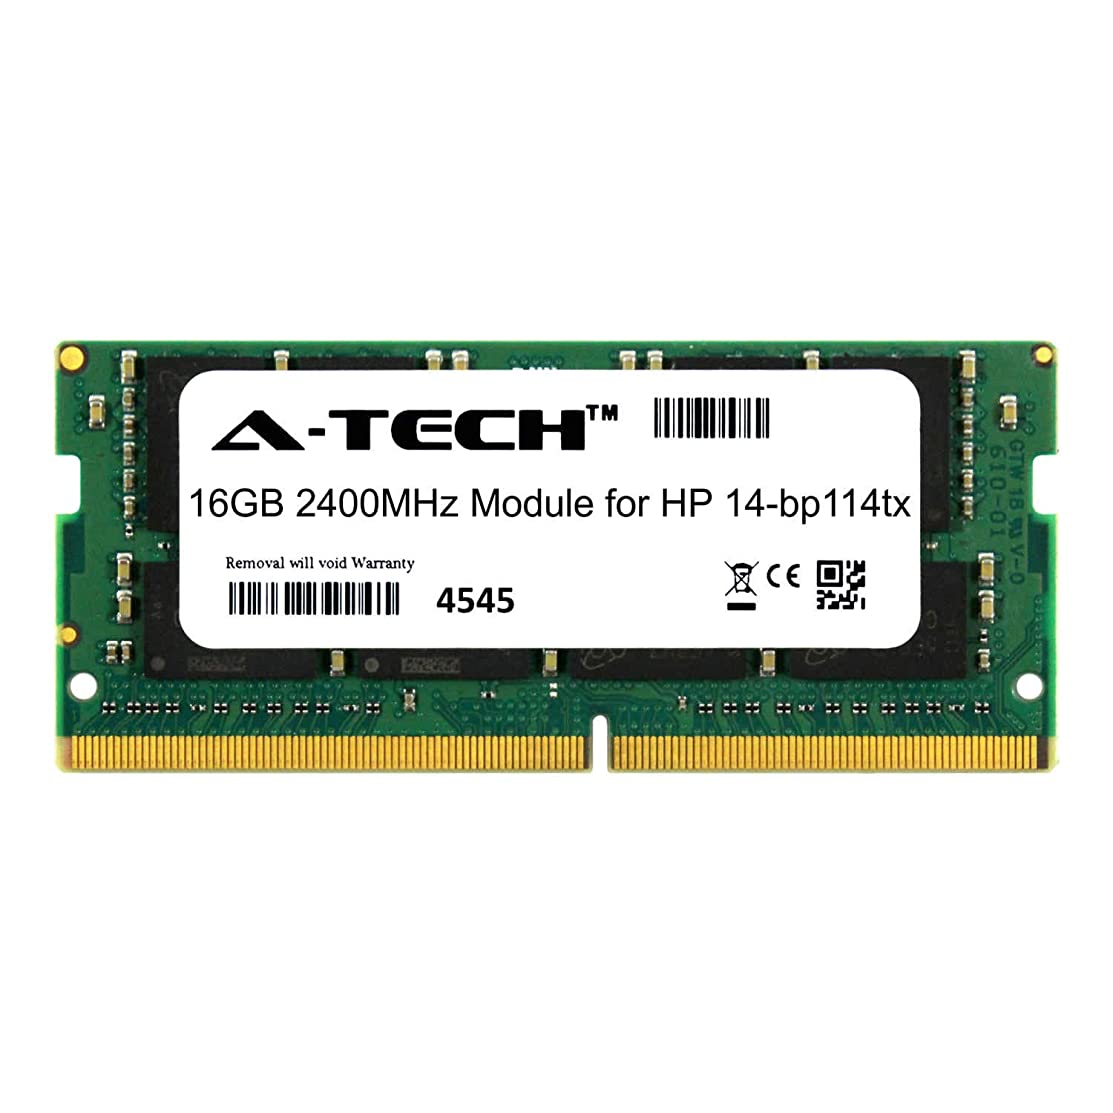 A-Tech 16GB Module for HP 14-bp114tx Laptop & Notebook Compatible DDR4 2400Mhz Memory Ram (ATMS378534A25831X1)